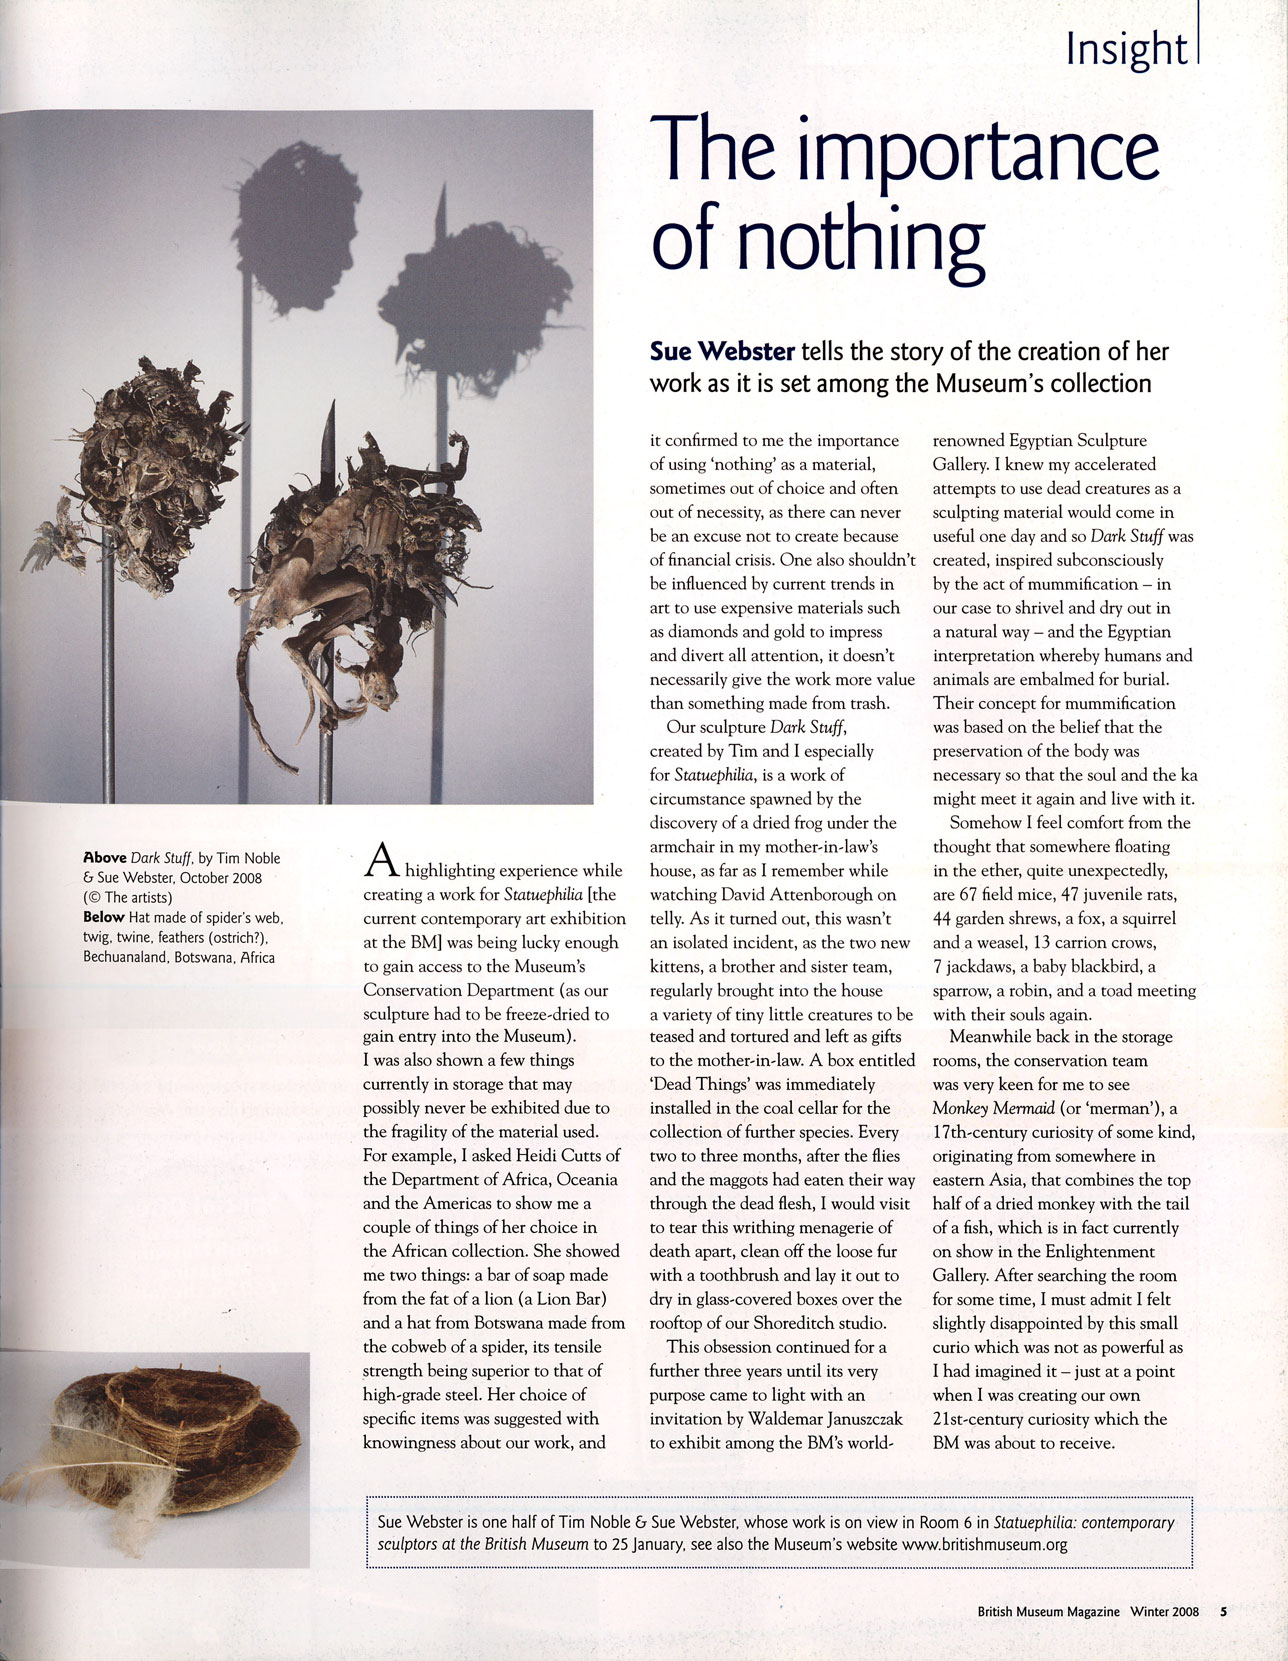 British Museum magazine, Winter 2008, pg 5